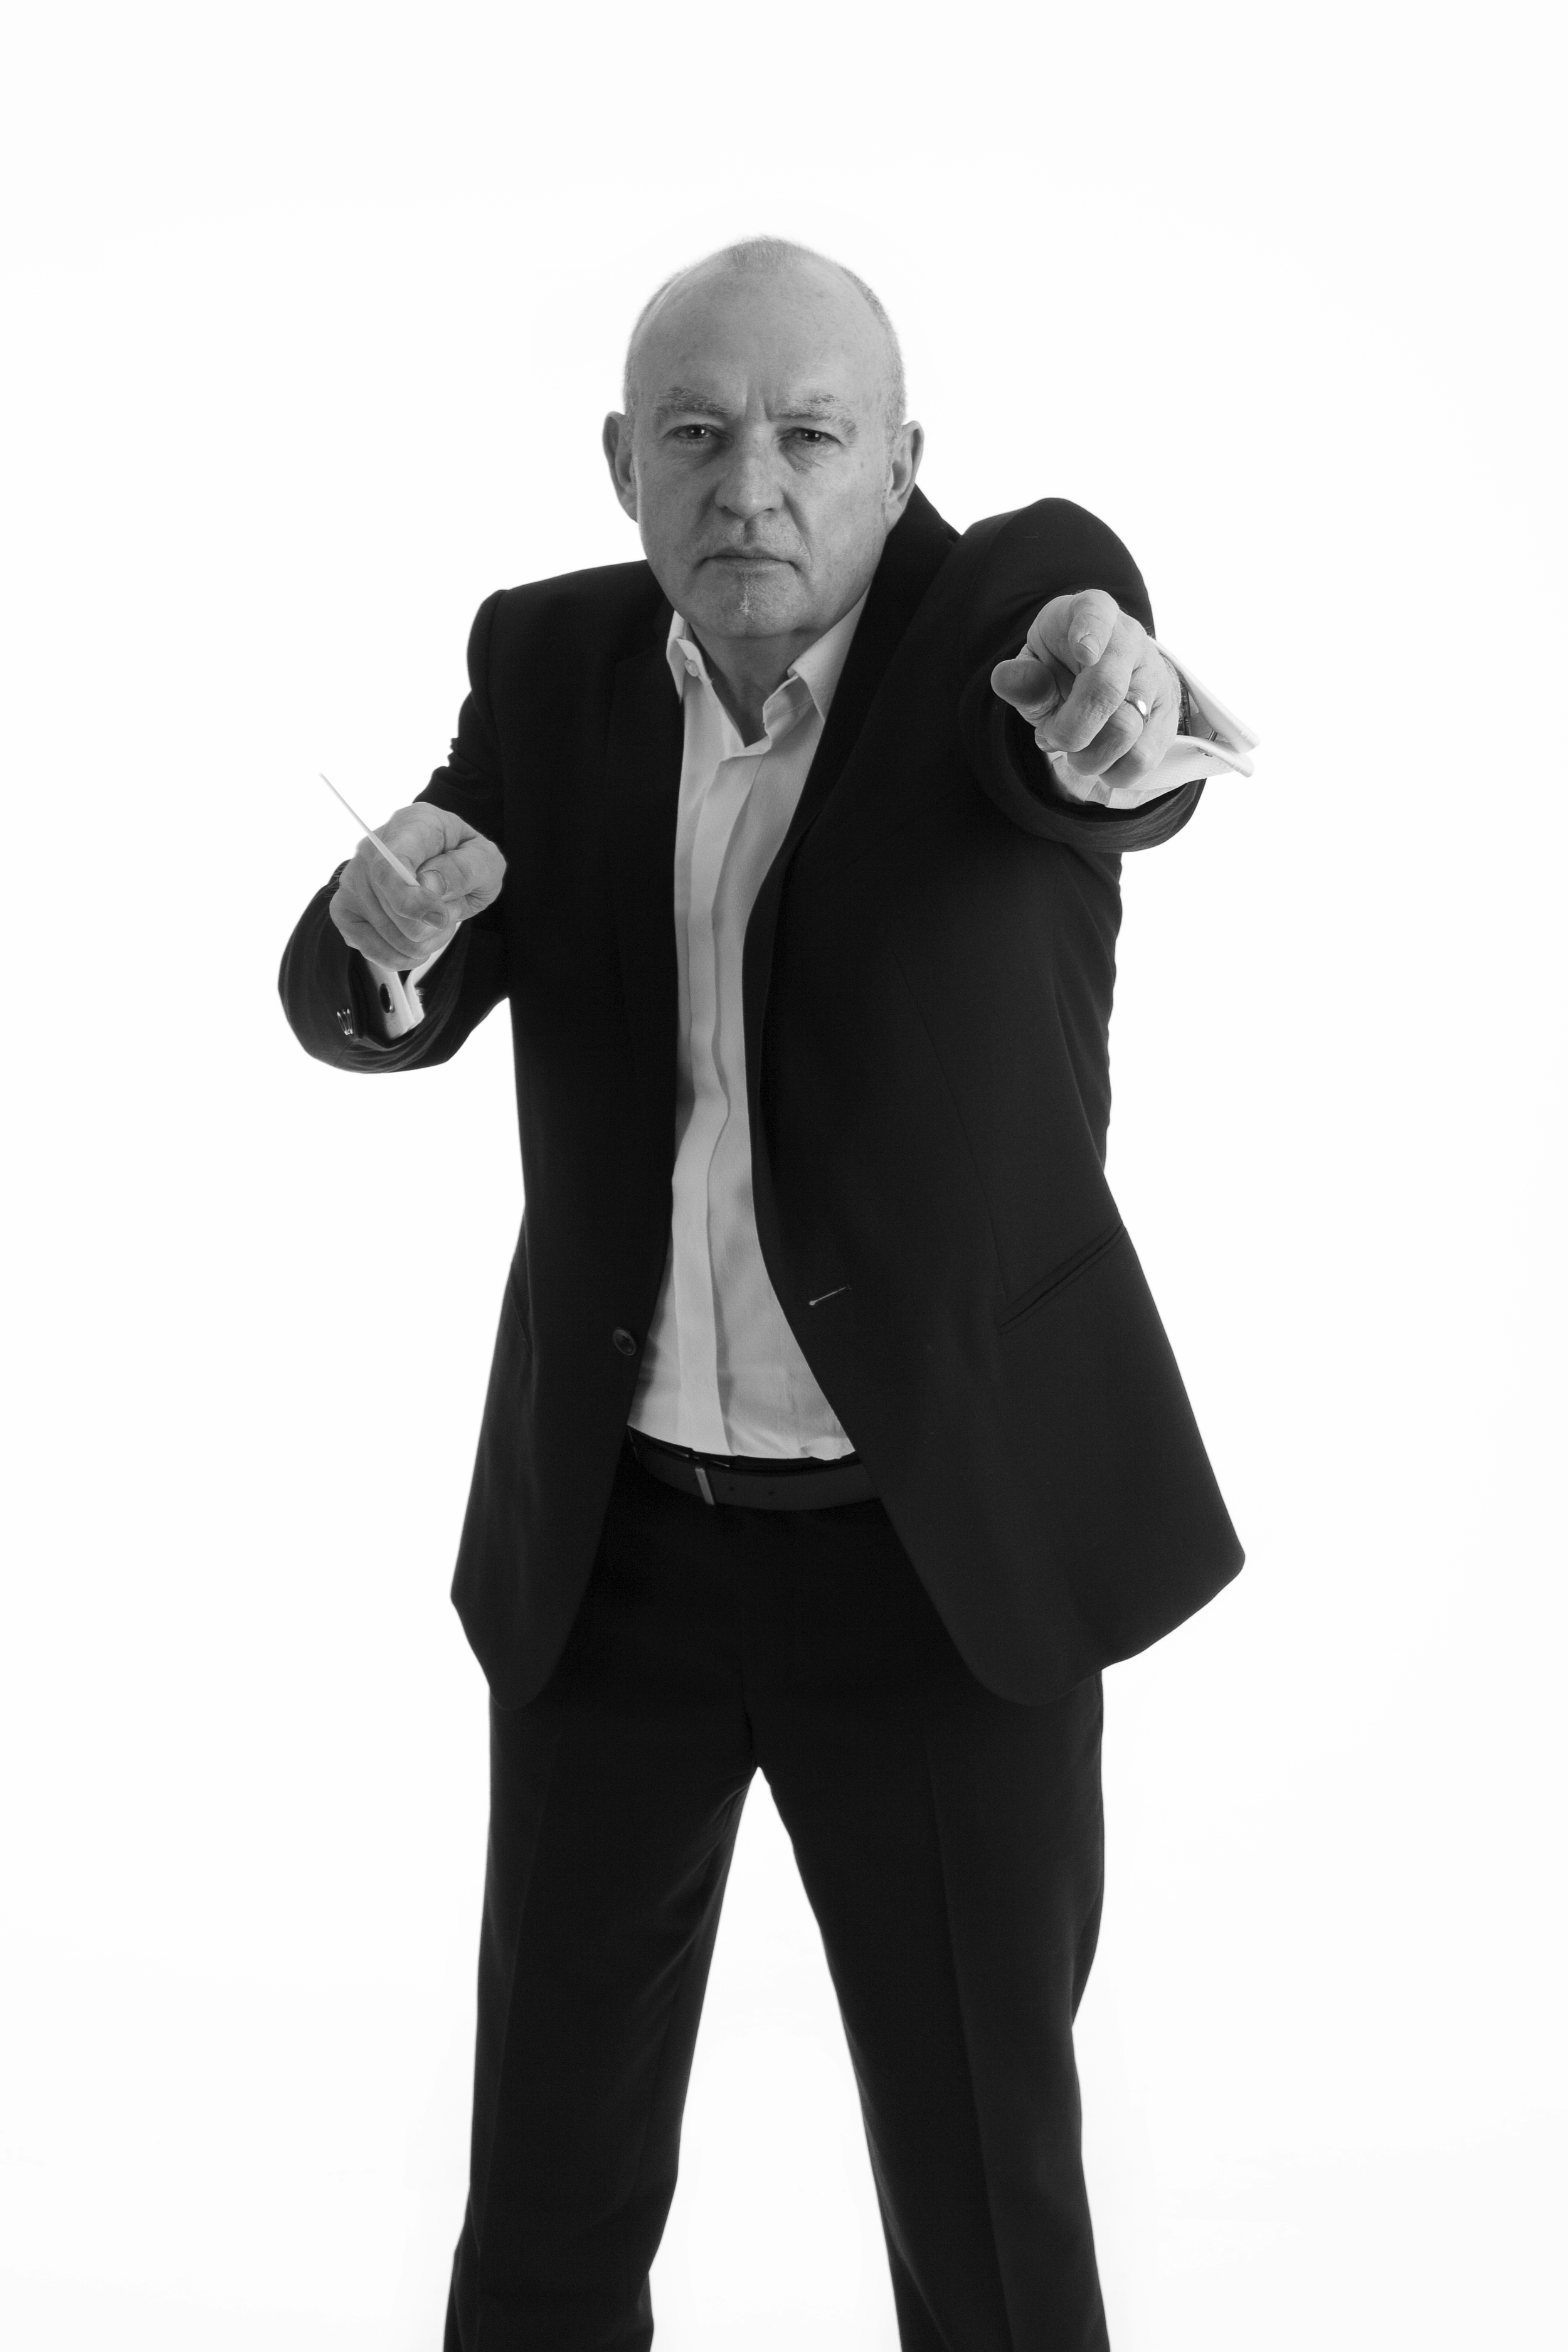 Allan pointing-black and white.png